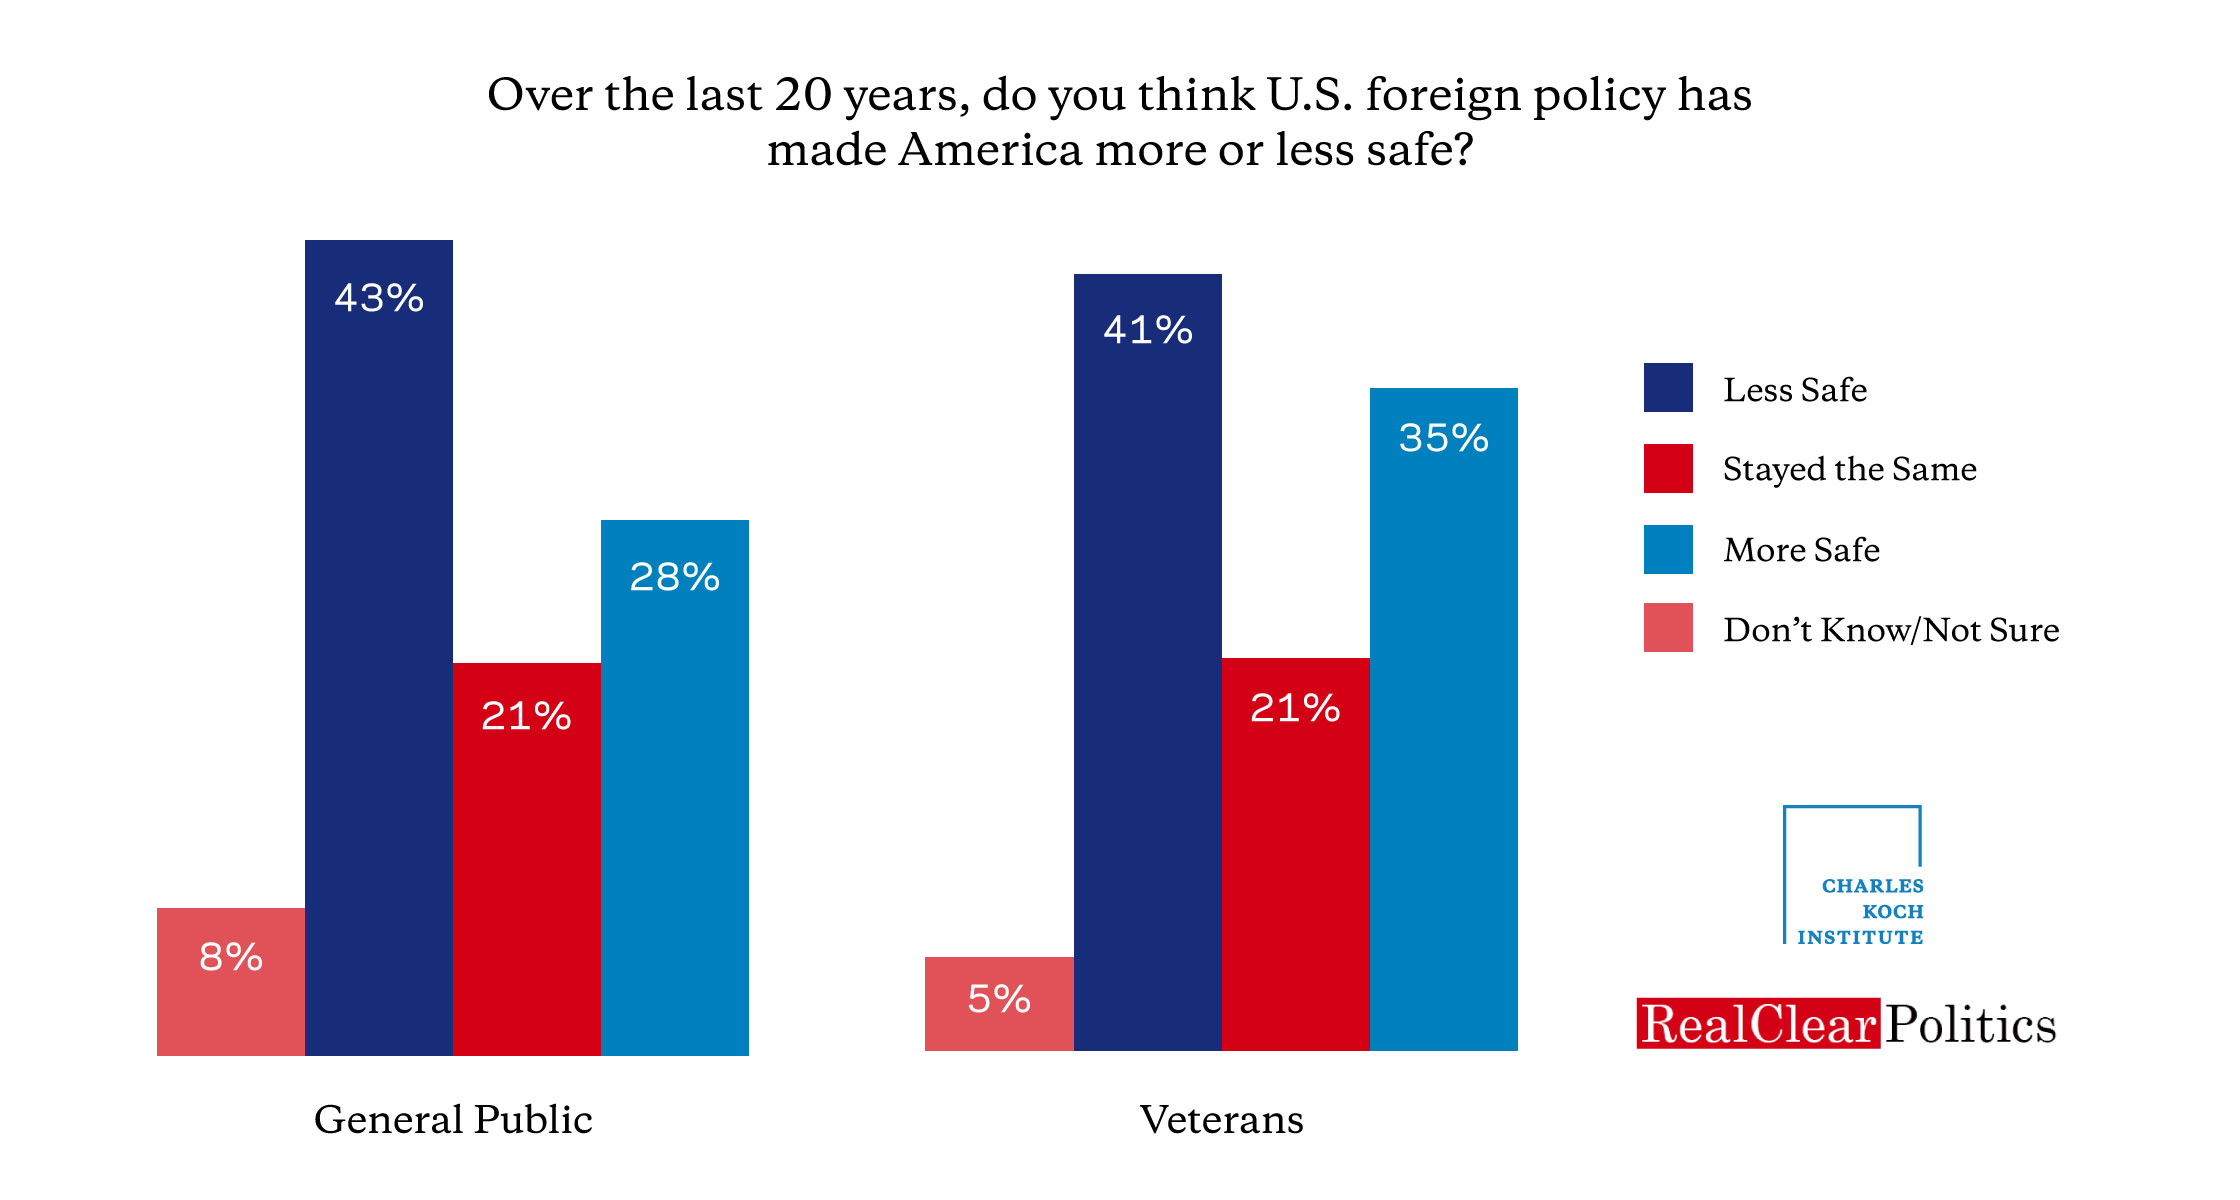 Charles Koch Institute Real Clear Politics Foreign Policy Poll